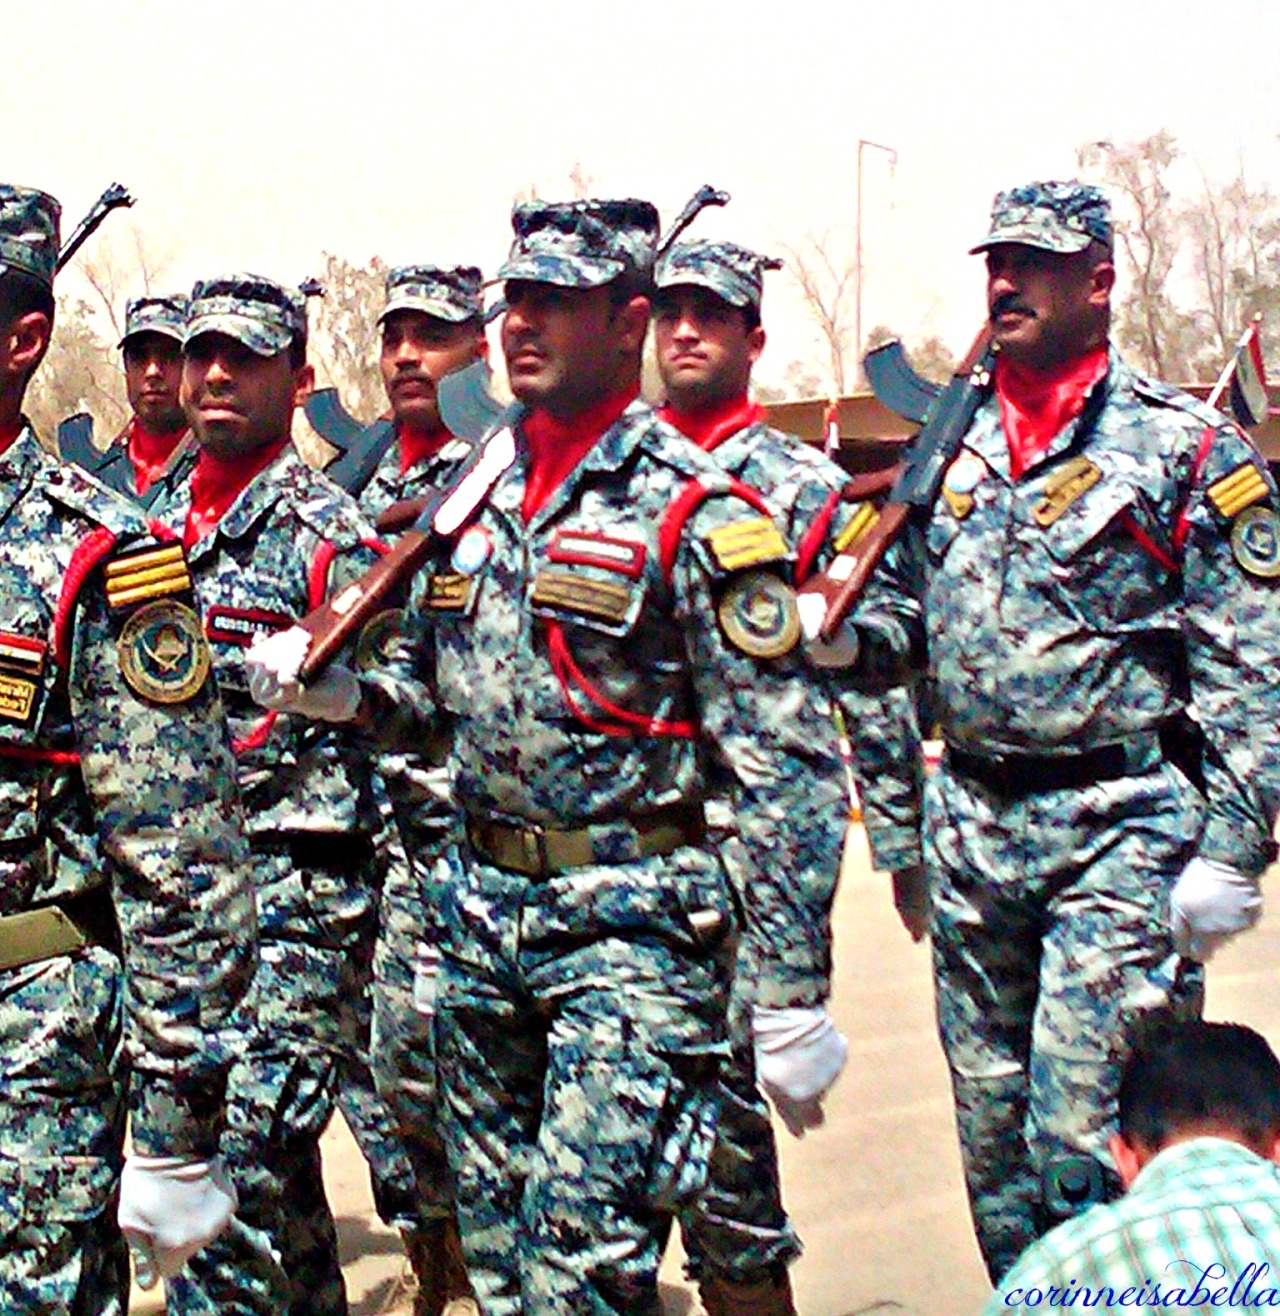 Iraq Federal Police Training Academy – Graduation day parade